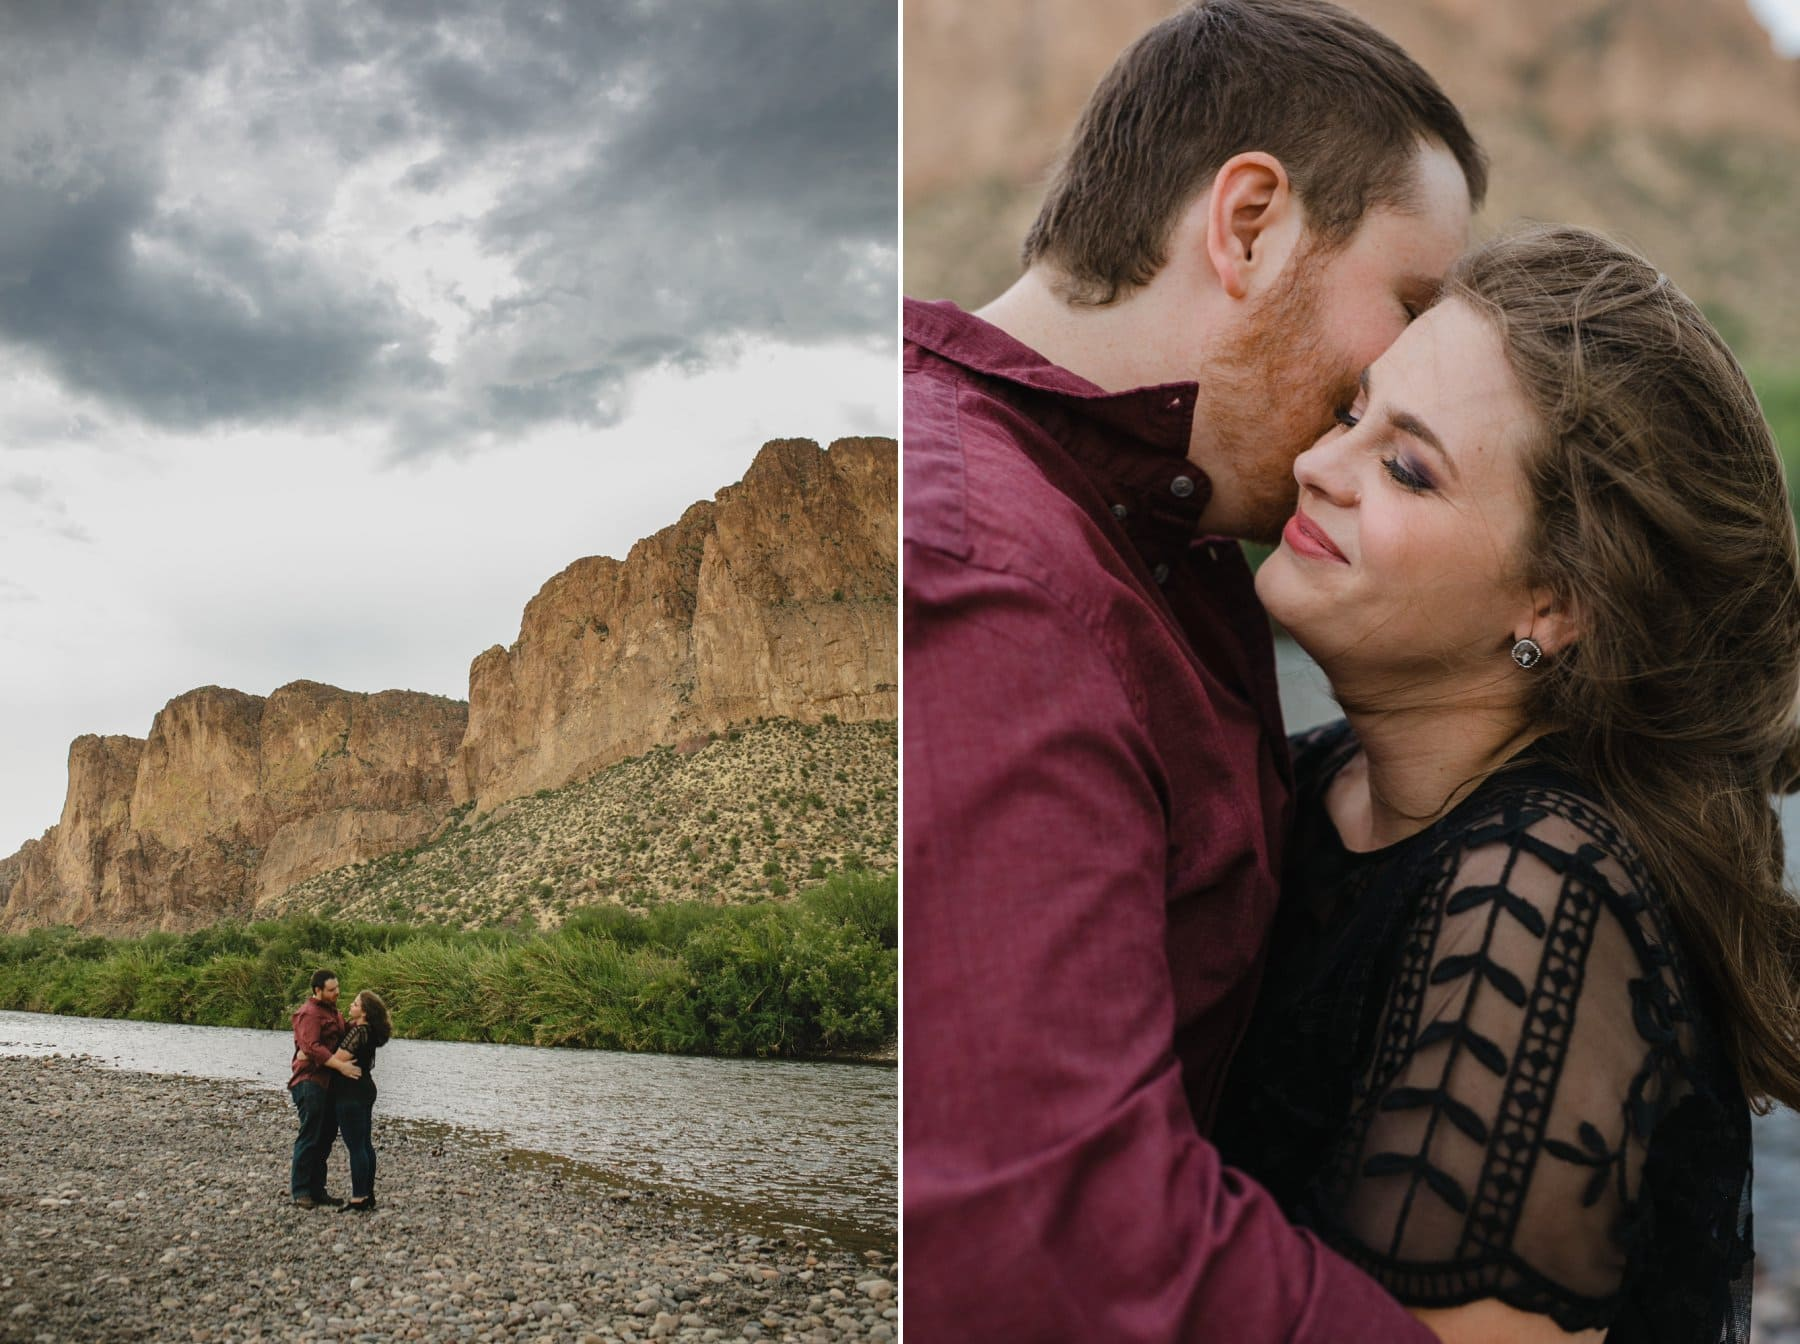 stormy engagement photos at the Salt River